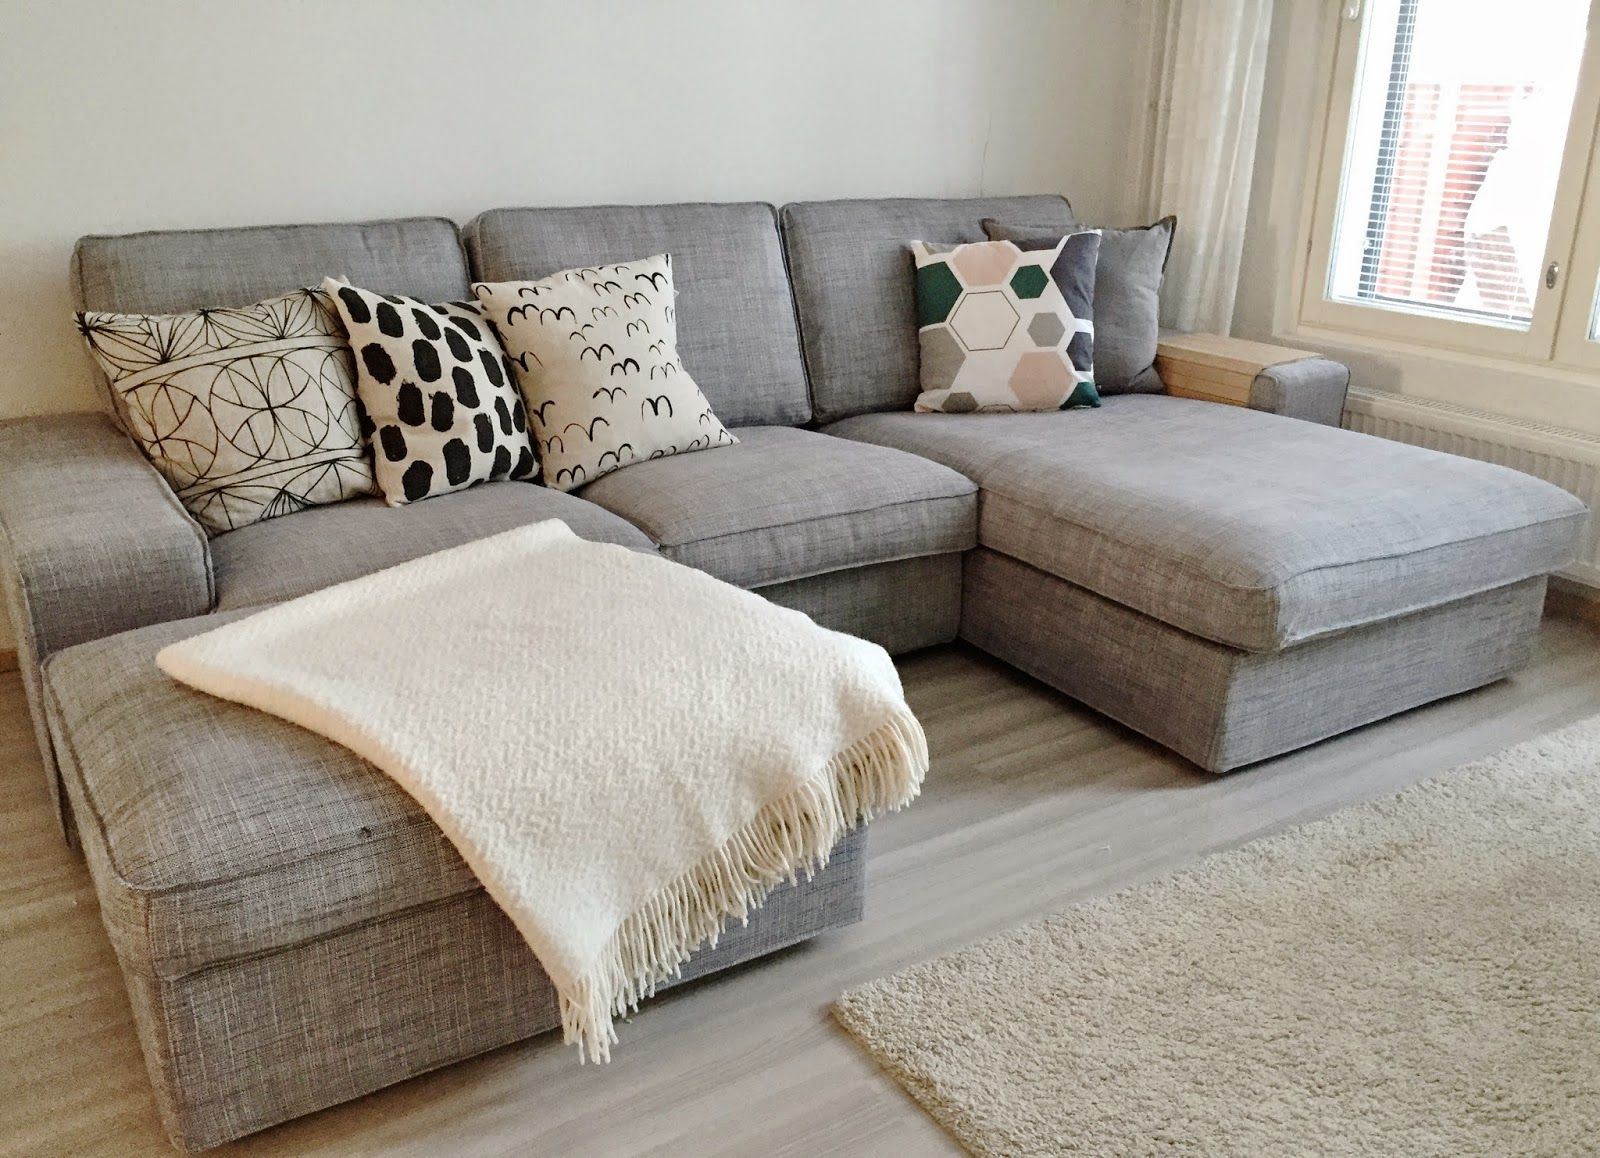 Living Room Ideas With Sectional Couch